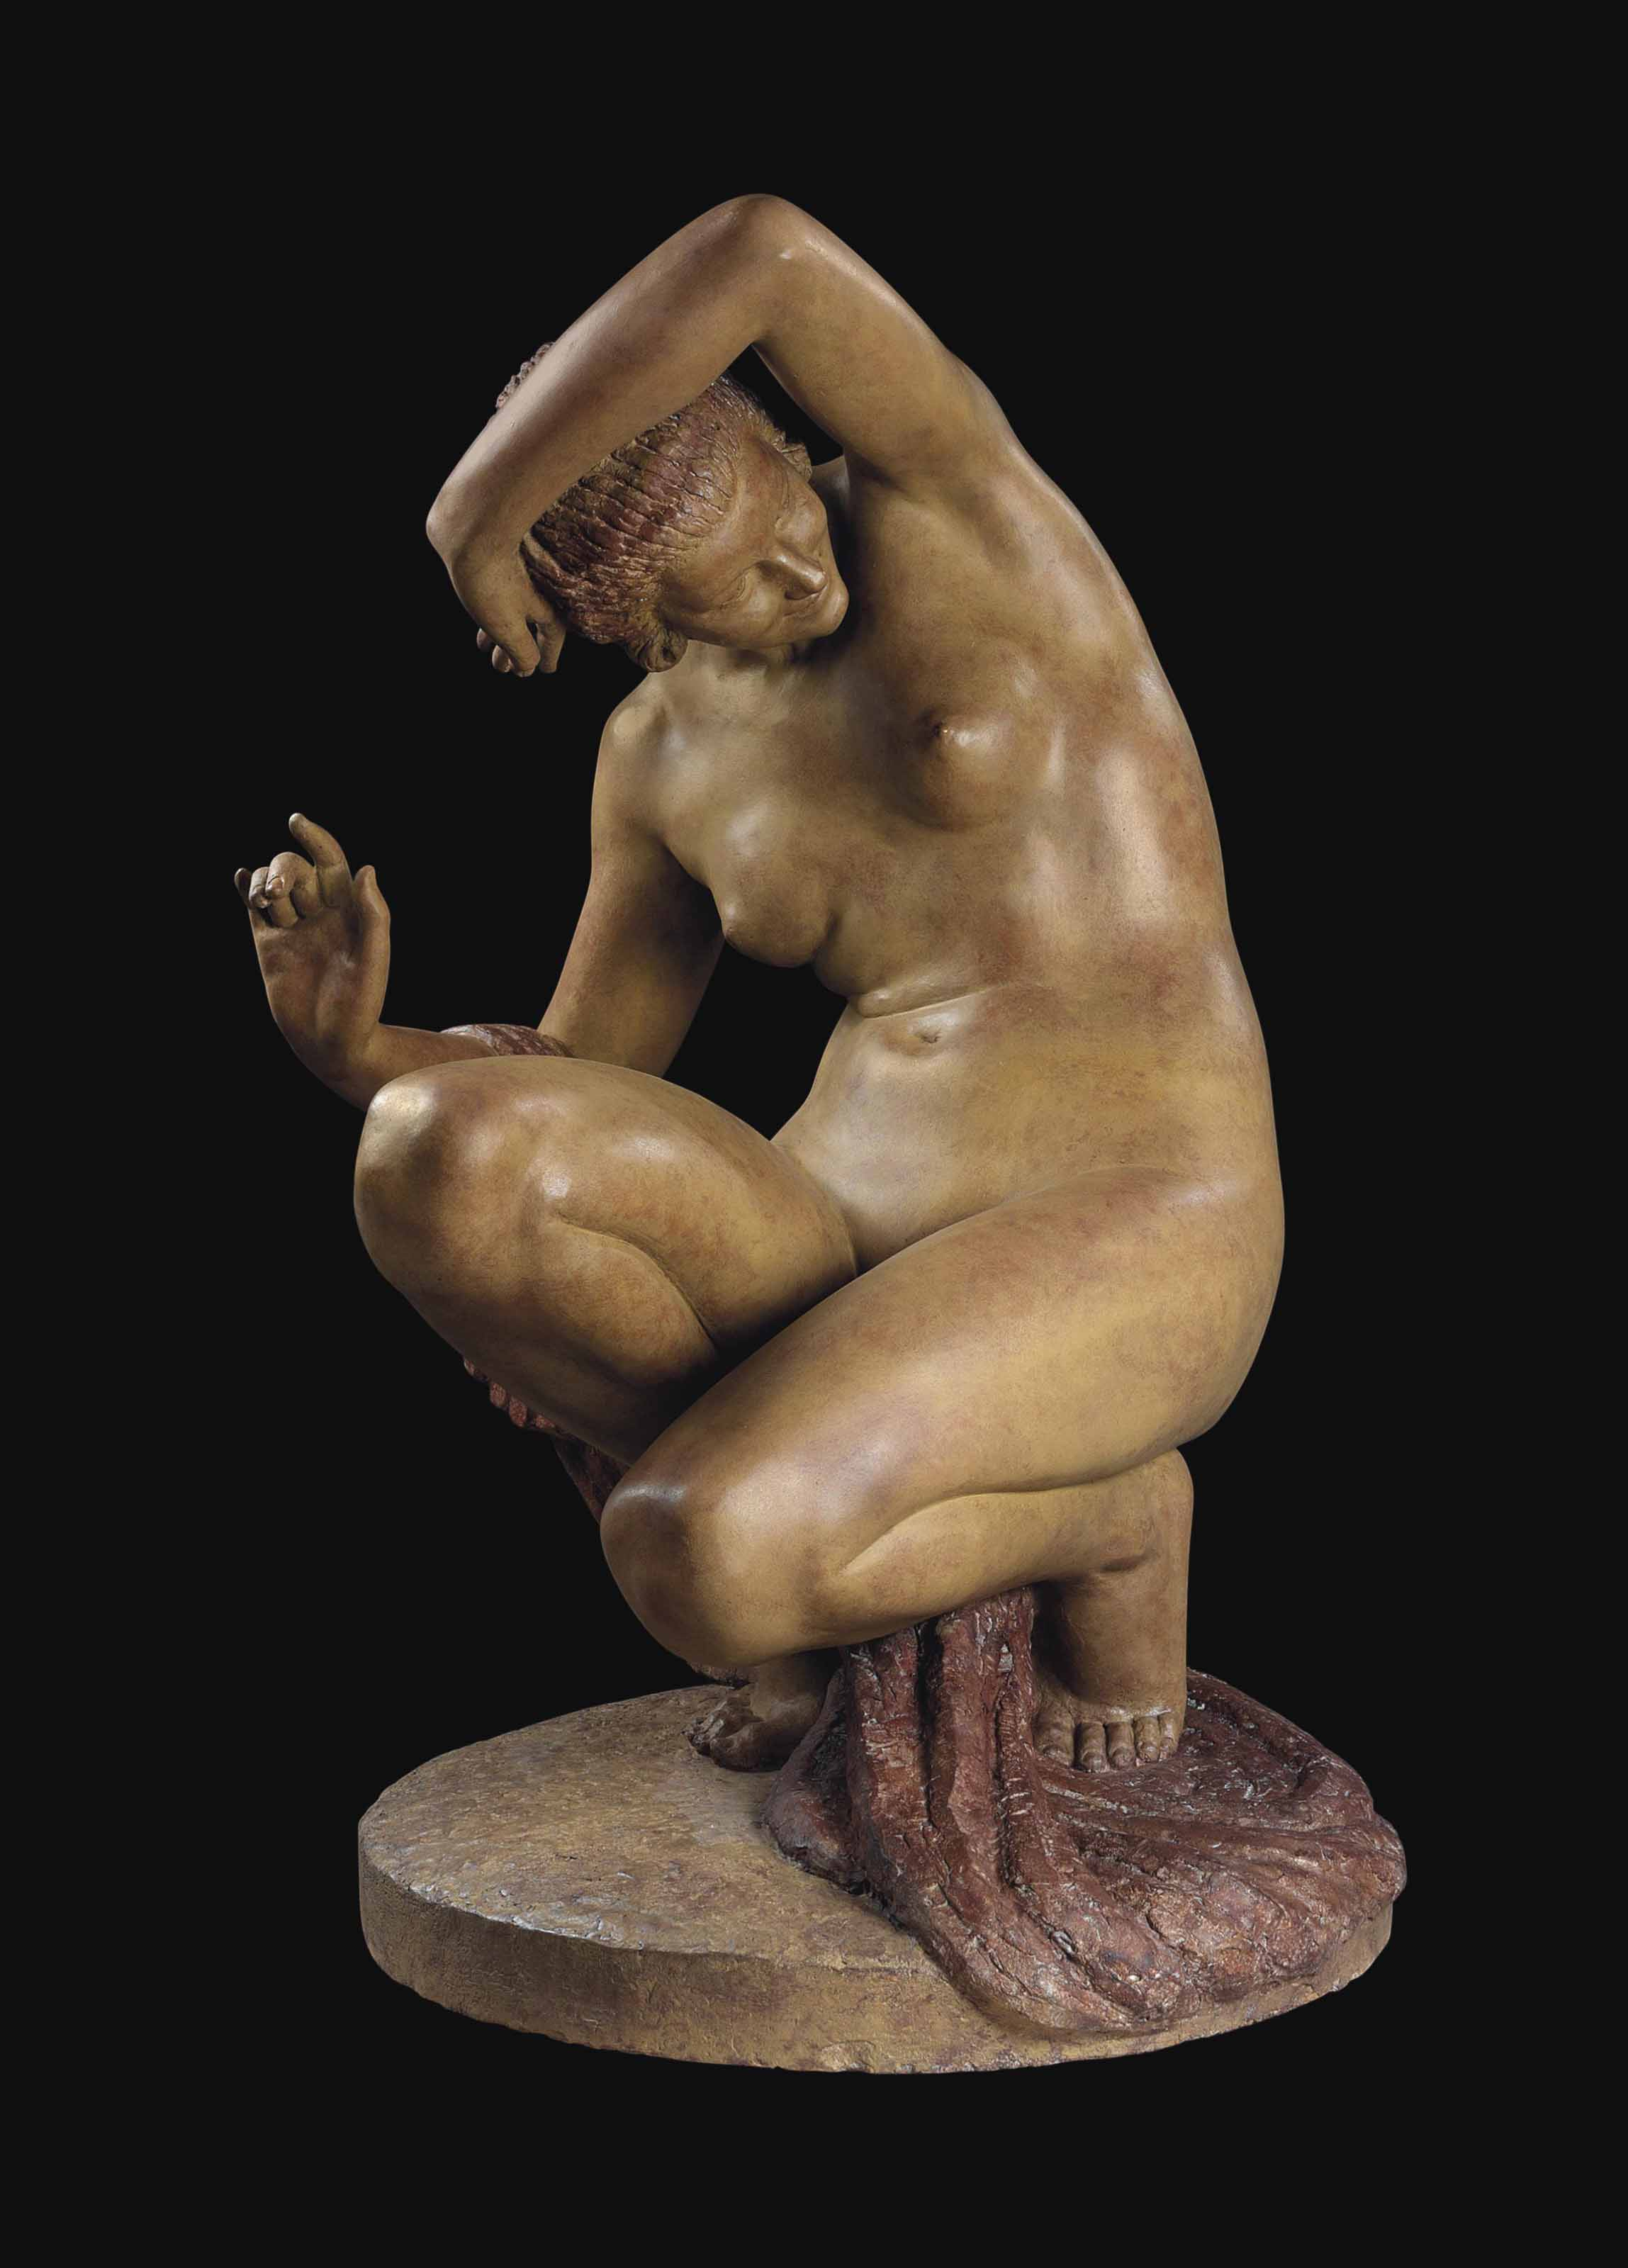 AN OVER LIFESIZE FRENCH TERRACOTTA FIGURE 'UNE BAIGNEUSE DRAPEE'